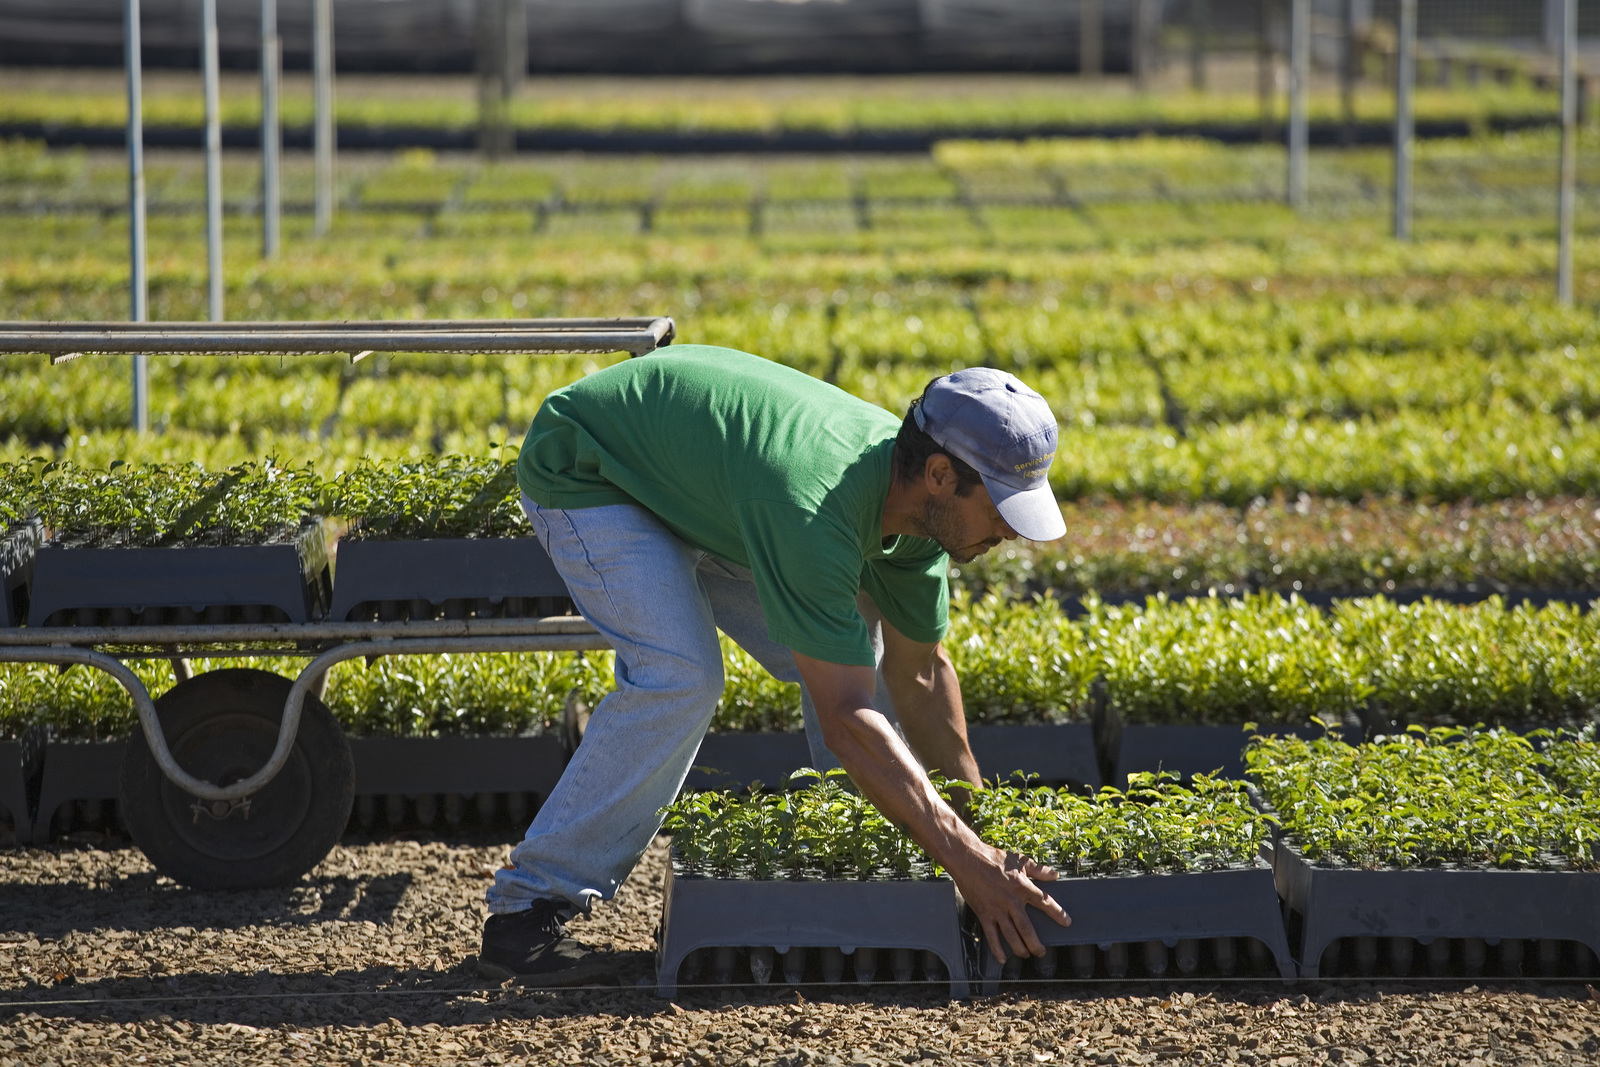 <p>Worker handles seedlings in state-owned tree nursery near Guarapuava, Brazil. Photo by Scott Warren/The Nature Conservancy</p>